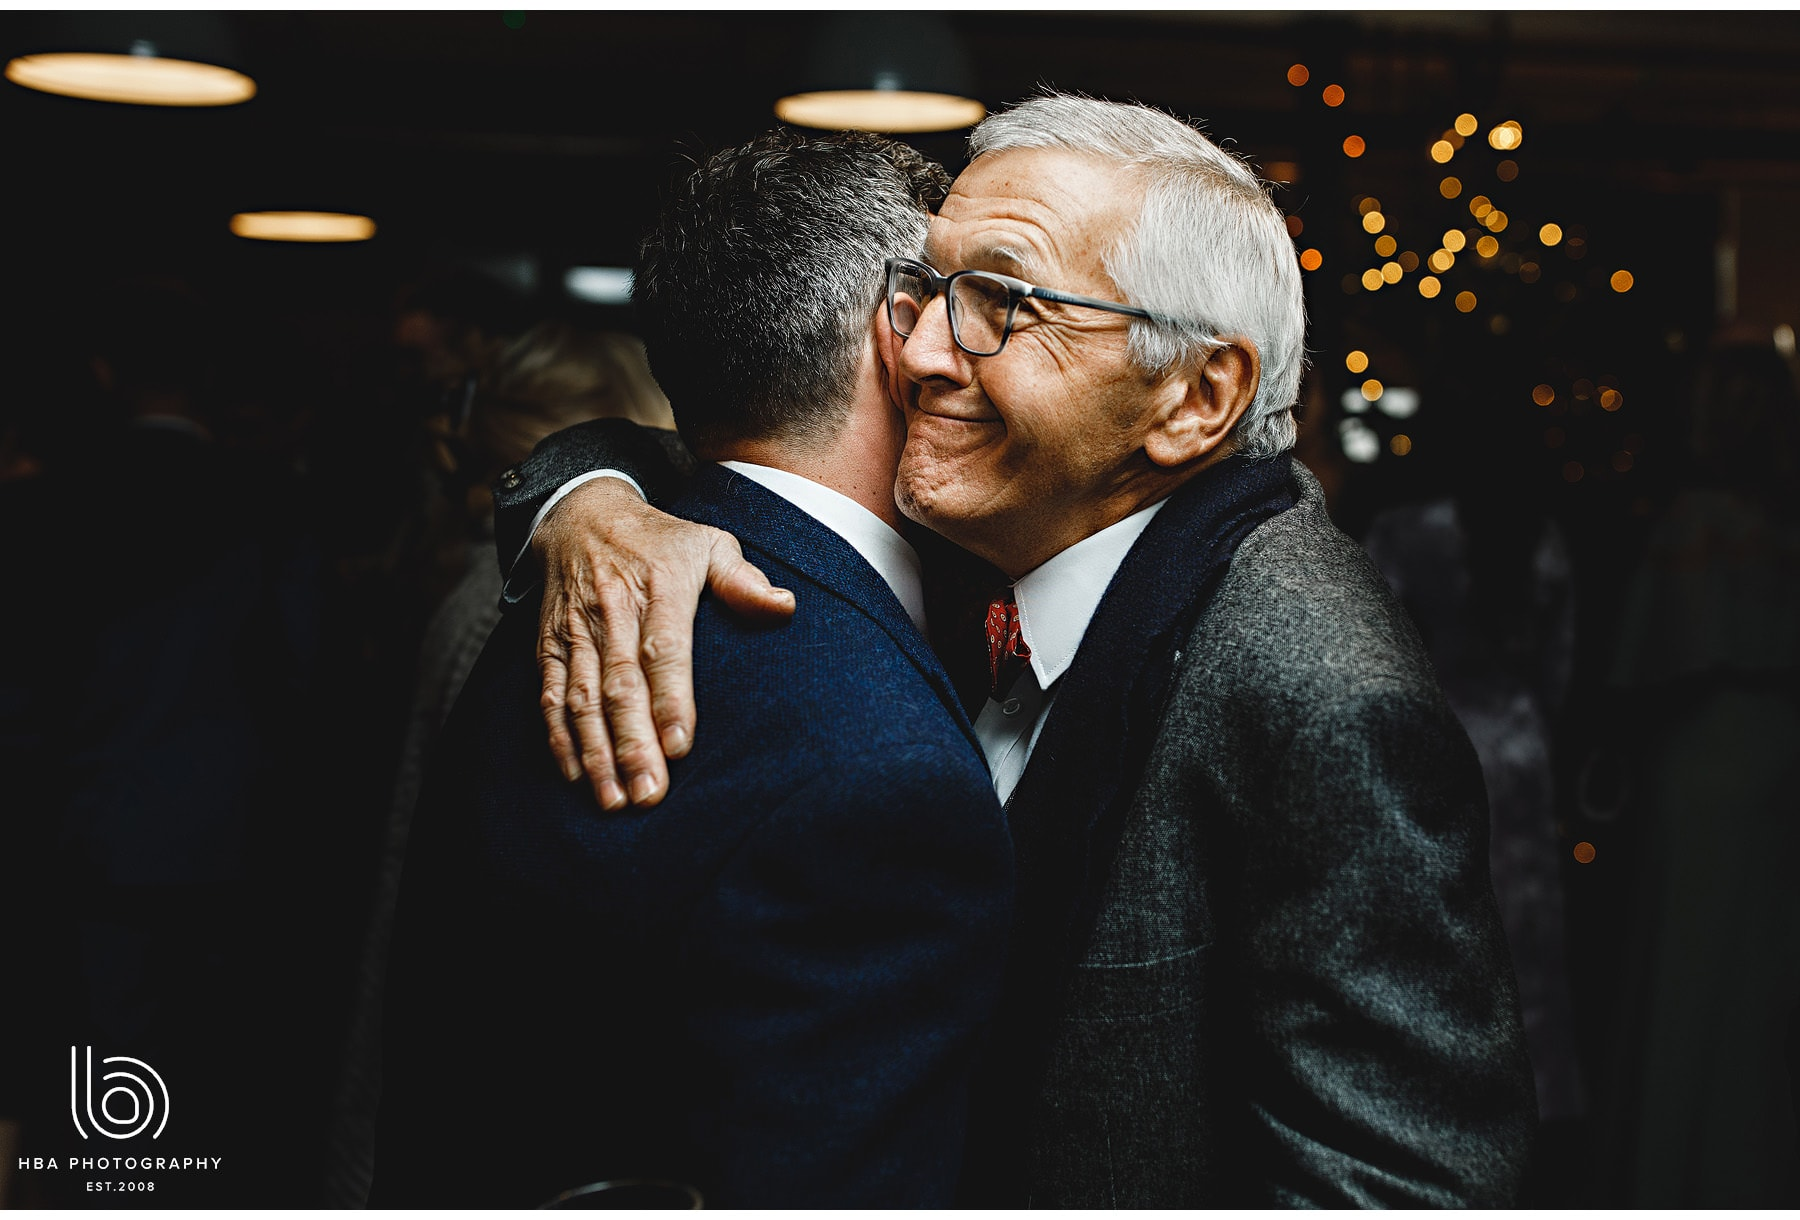 the groom hugging his uncle